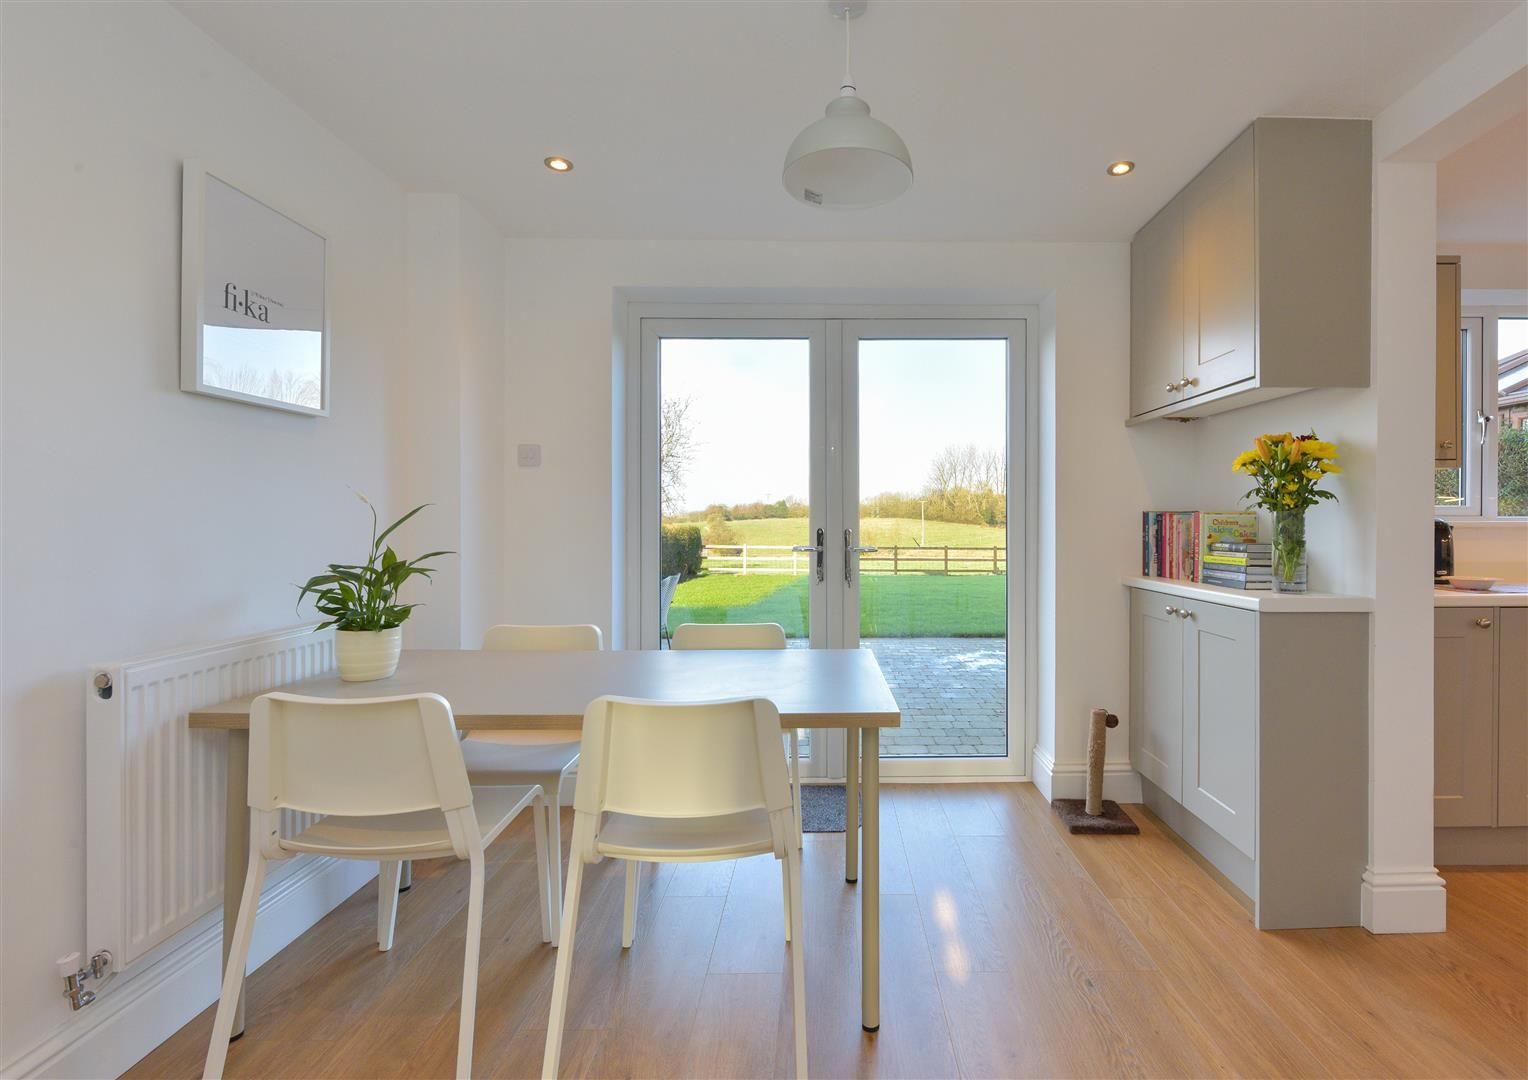 3 bed house for sale in Clent 9